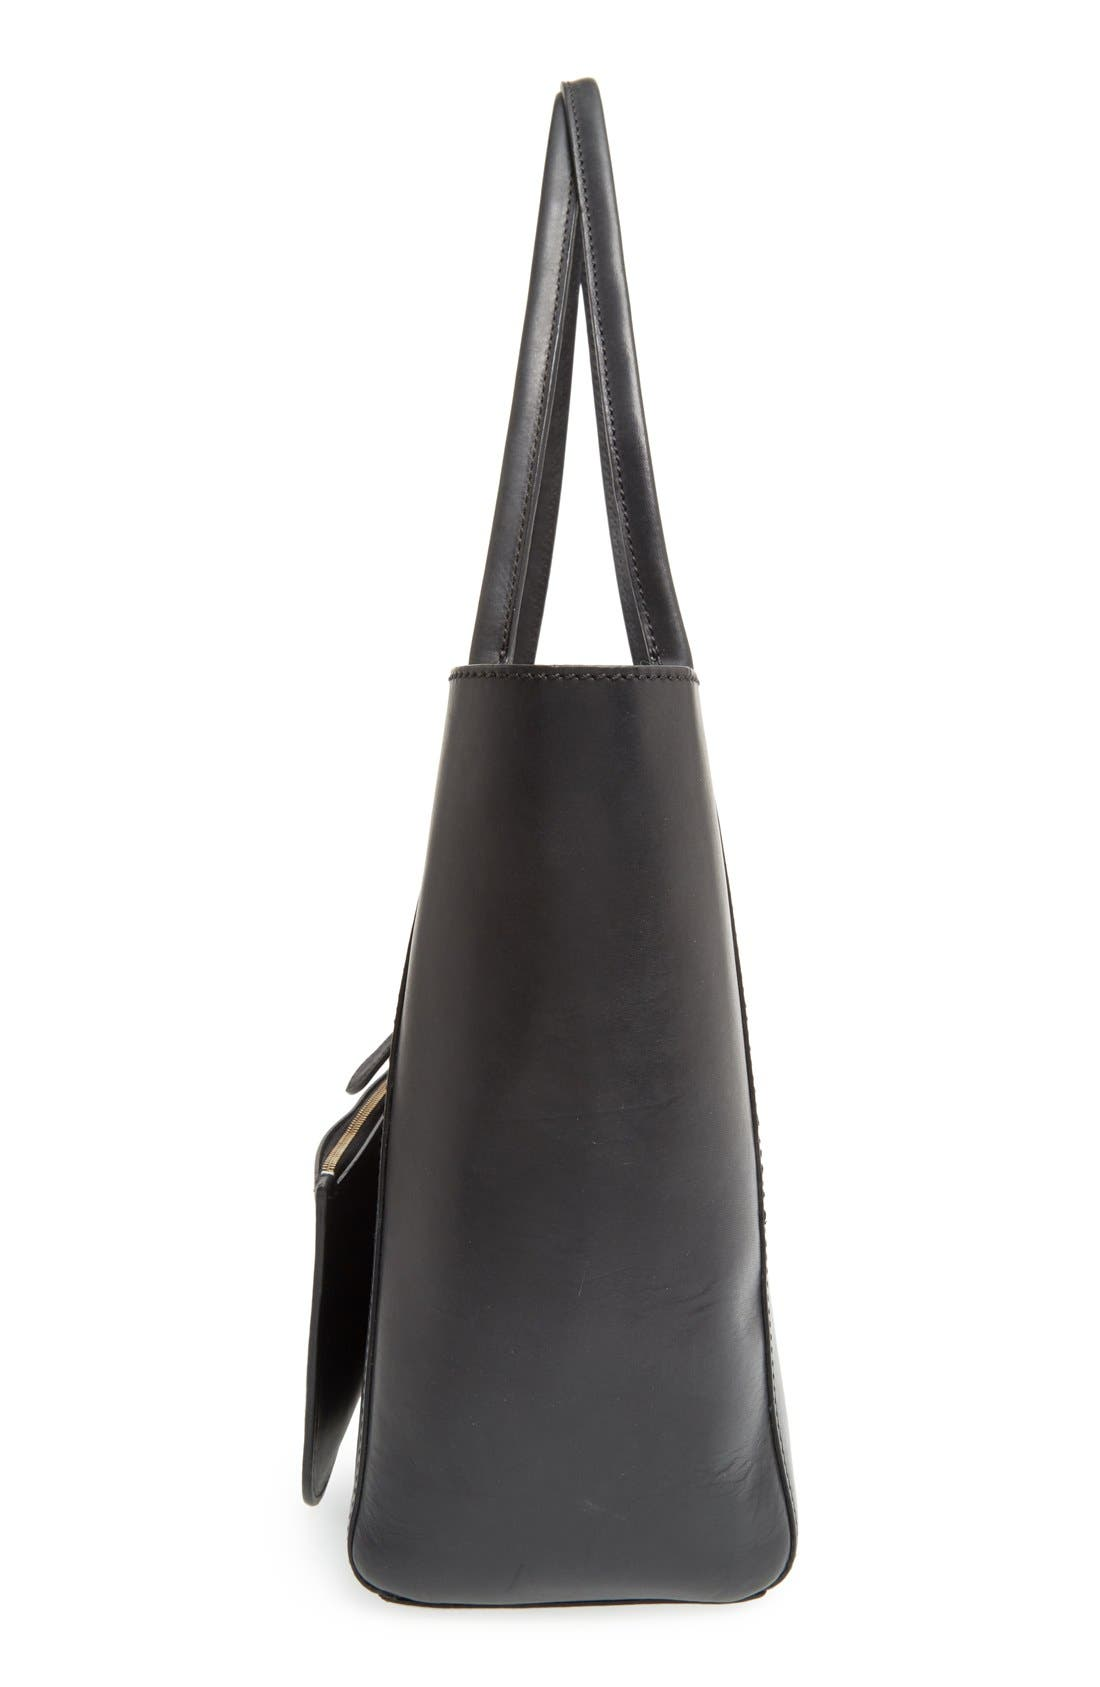 FRYE,                             'Casey' Leather Tote,                             Alternate thumbnail 5, color,                             001